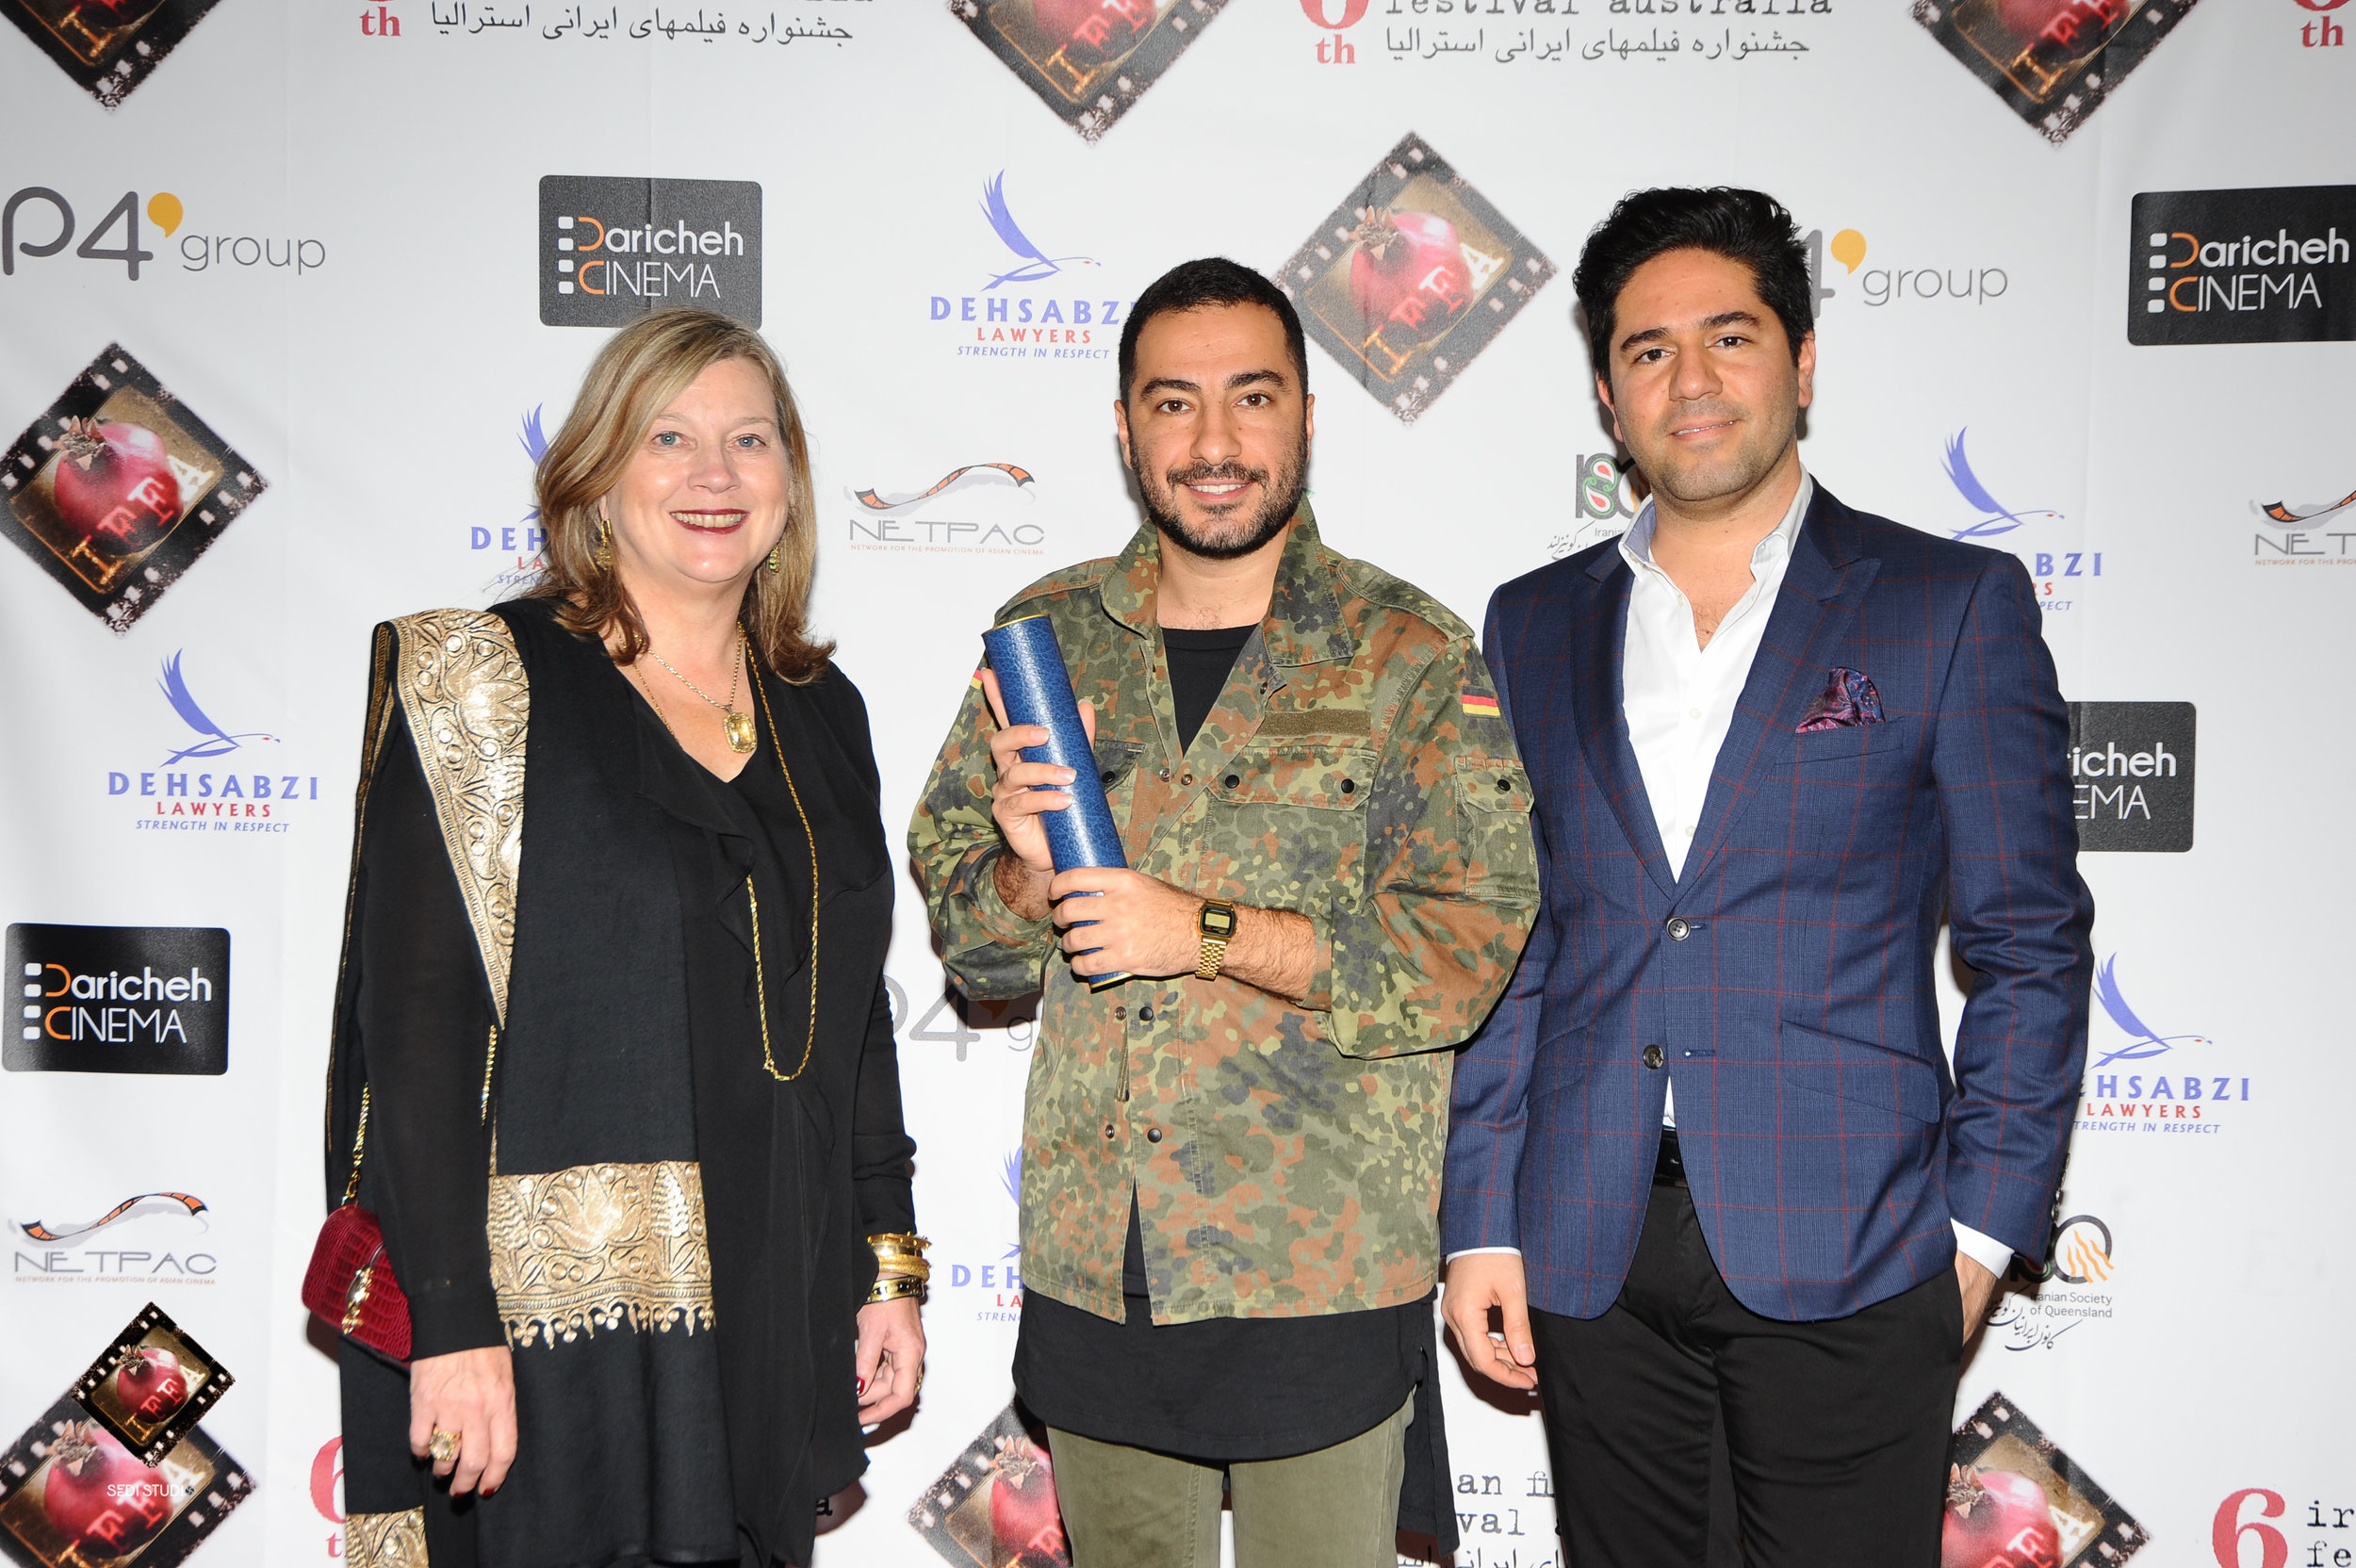 Actor Navid Mohammadzadeh accepting on behalf of Saeed Roostaee